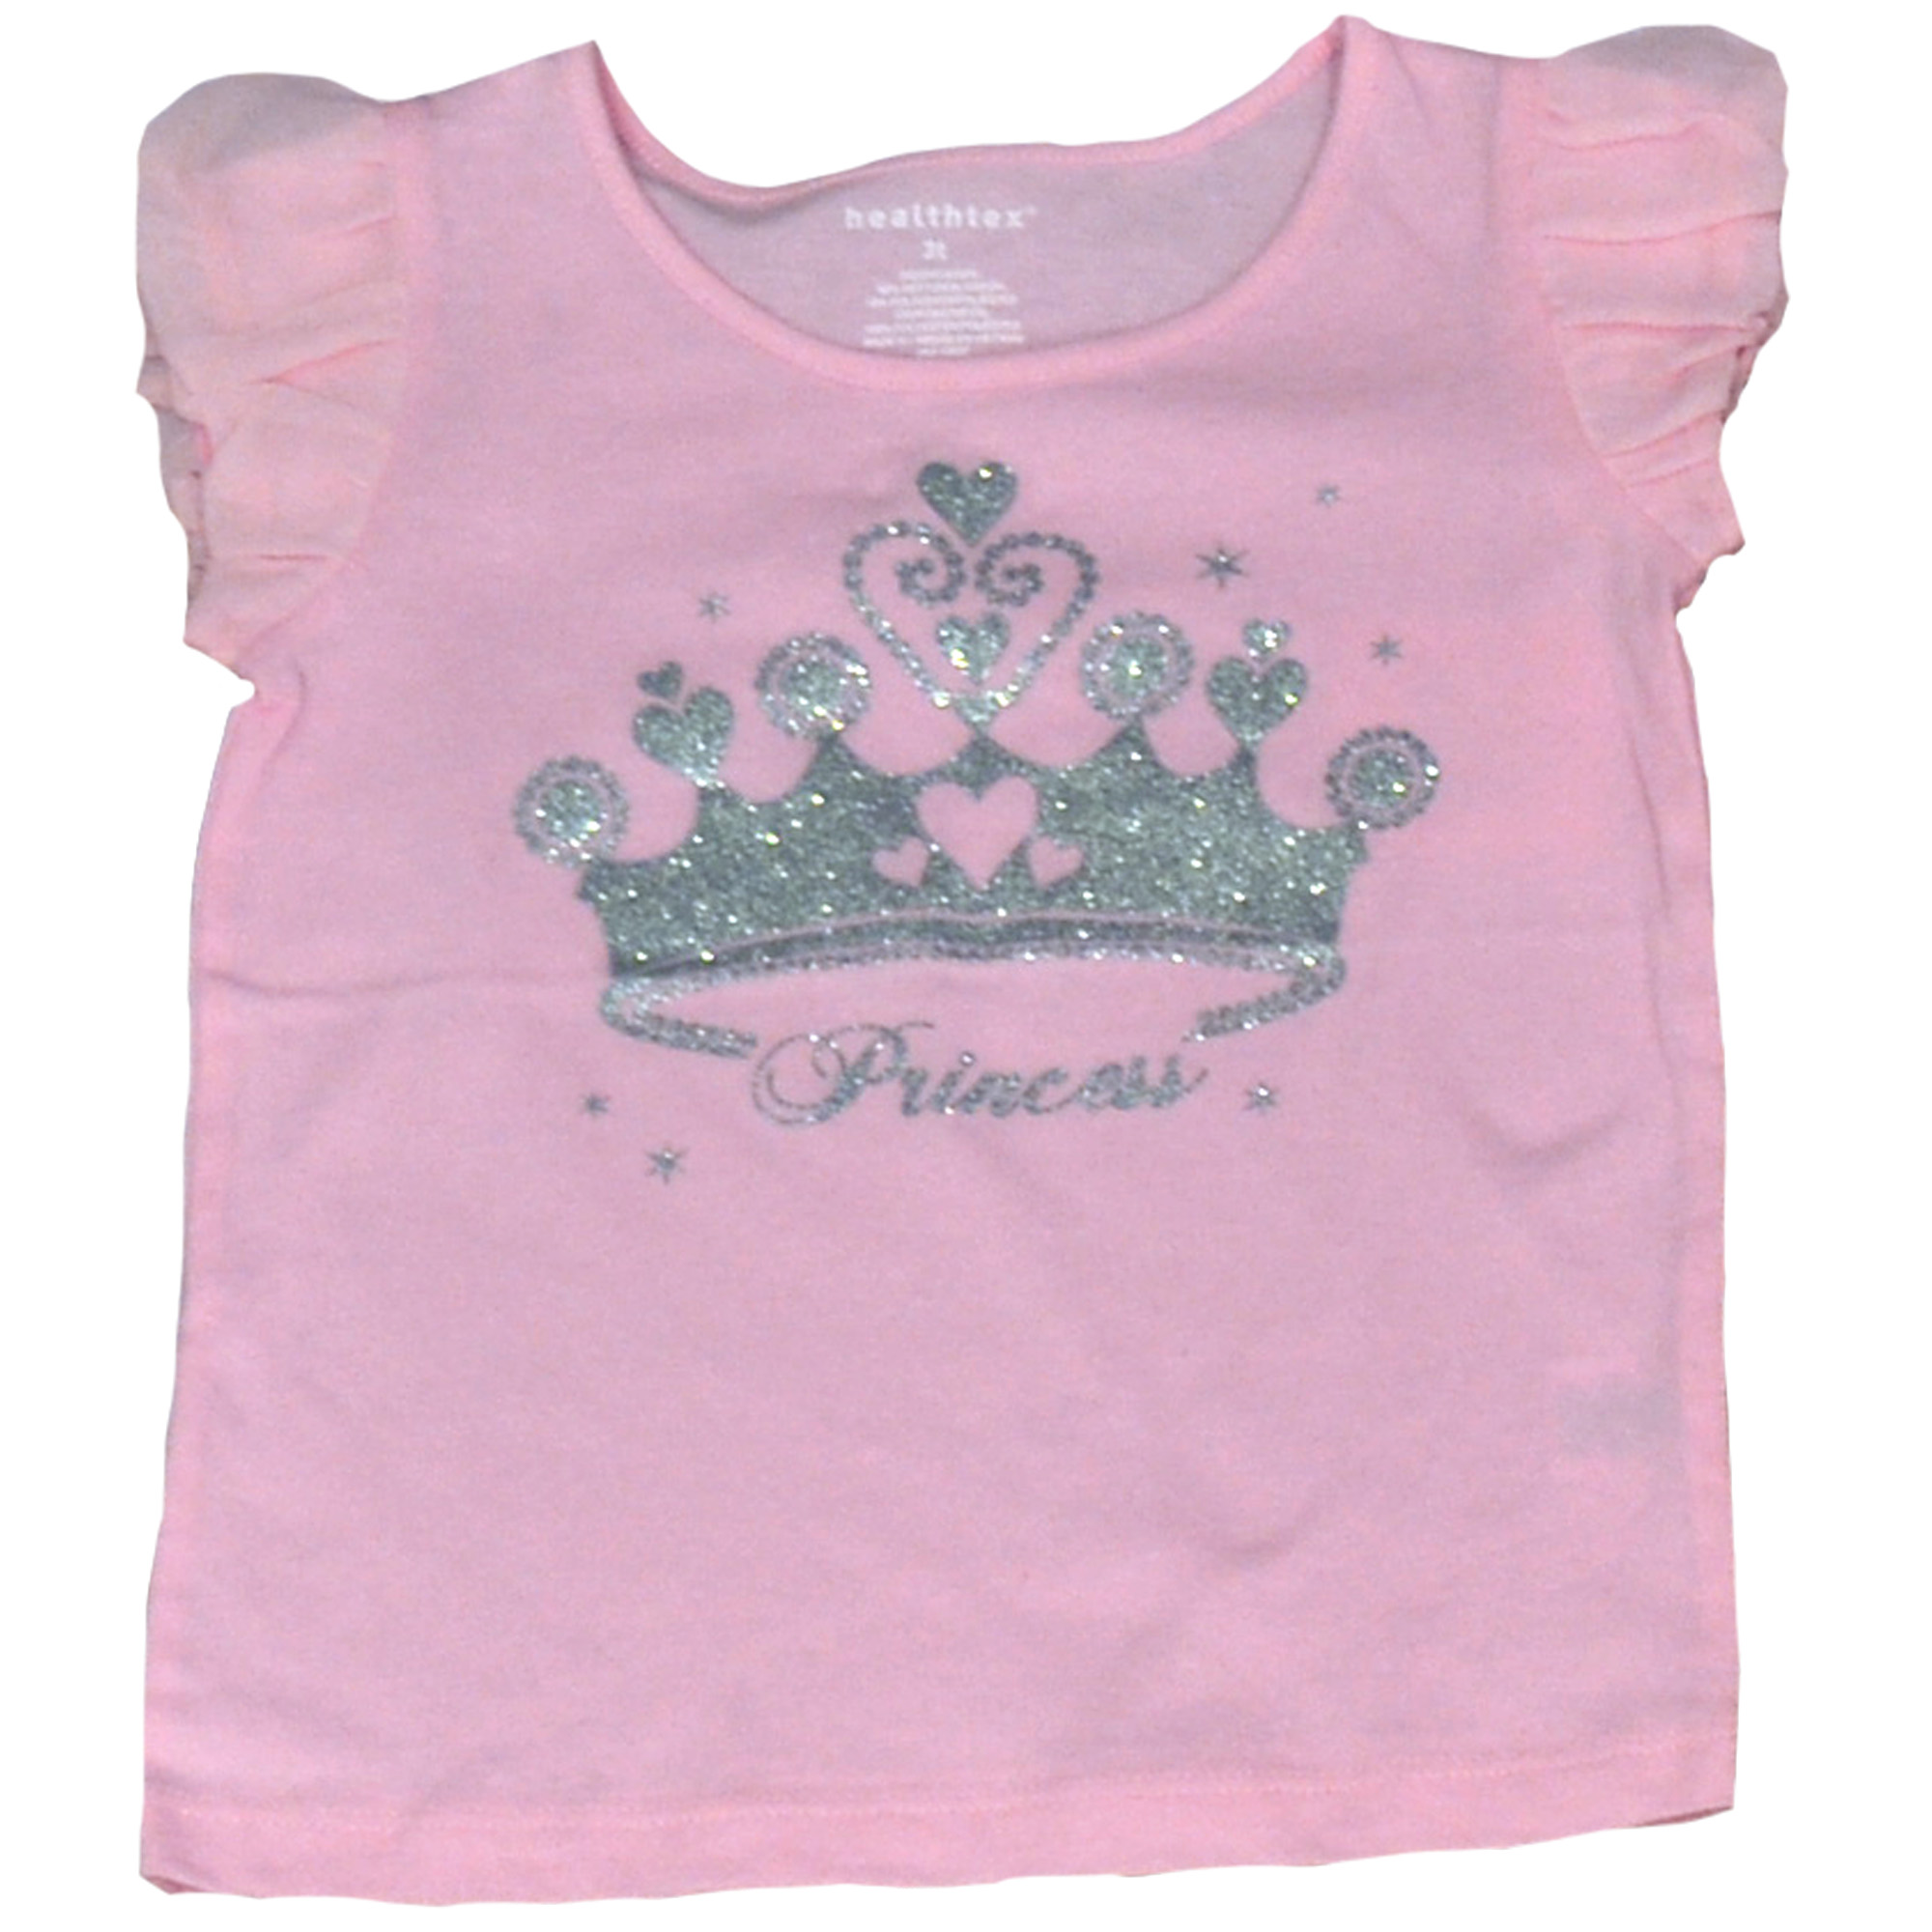 Healthtex Baby Toddler Girl Graphic Tee